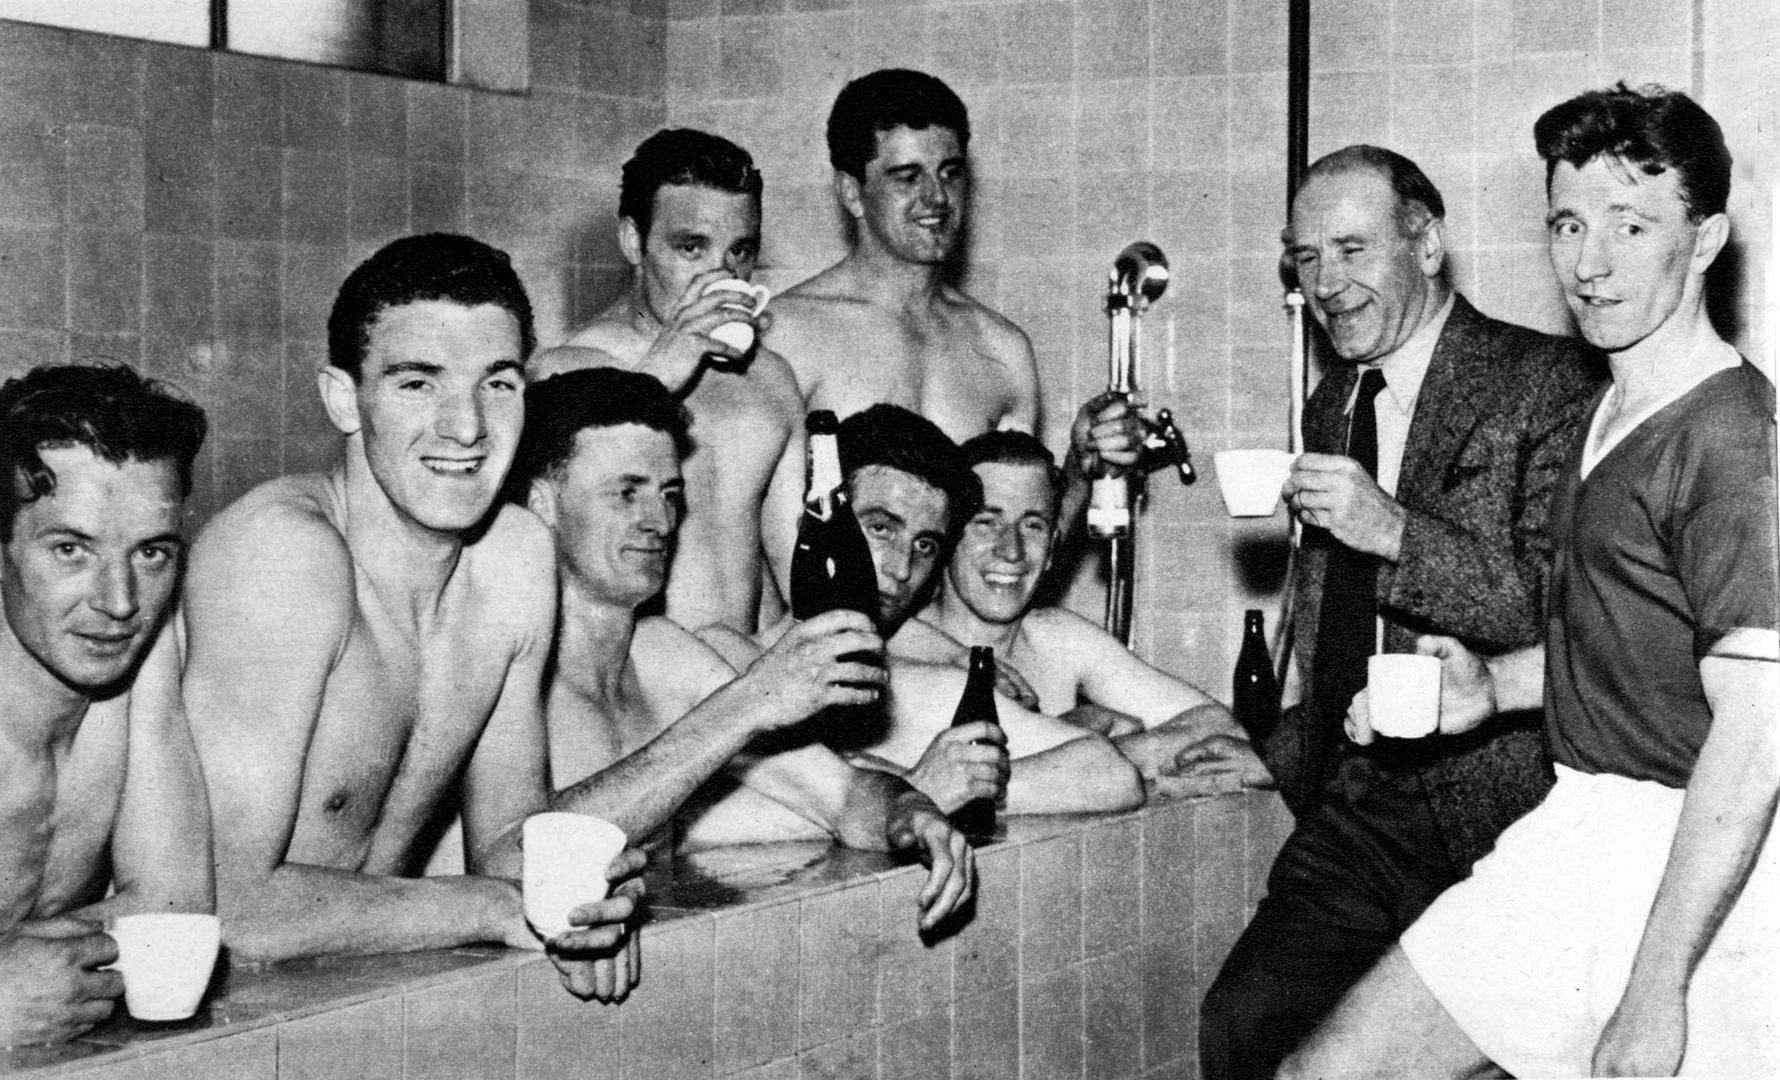 Manchester United players celebrate in the bath, with manager Matt Busby and captain Roger Byrne, after winning the 1956/57 league title